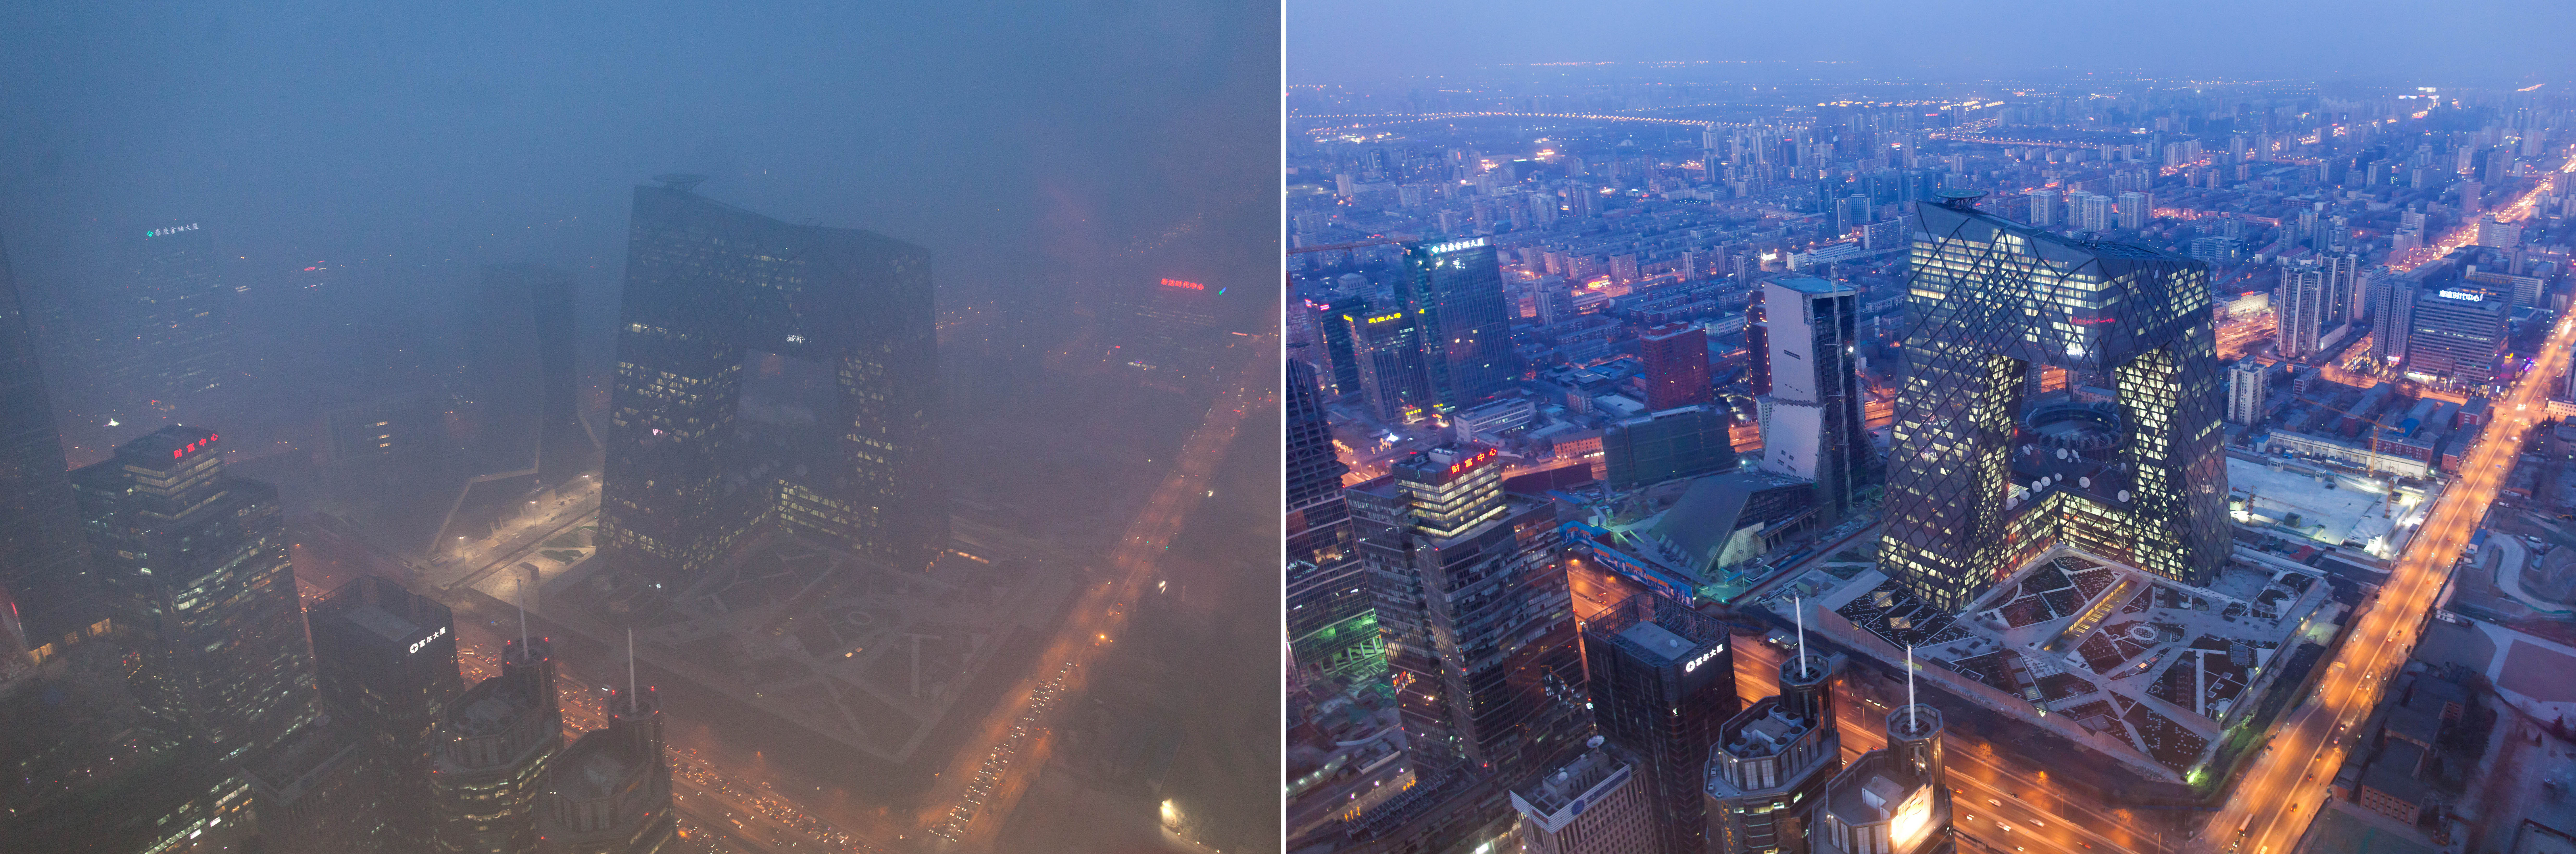 Beijing's Pollution, Seen From Space In Before And After Photos